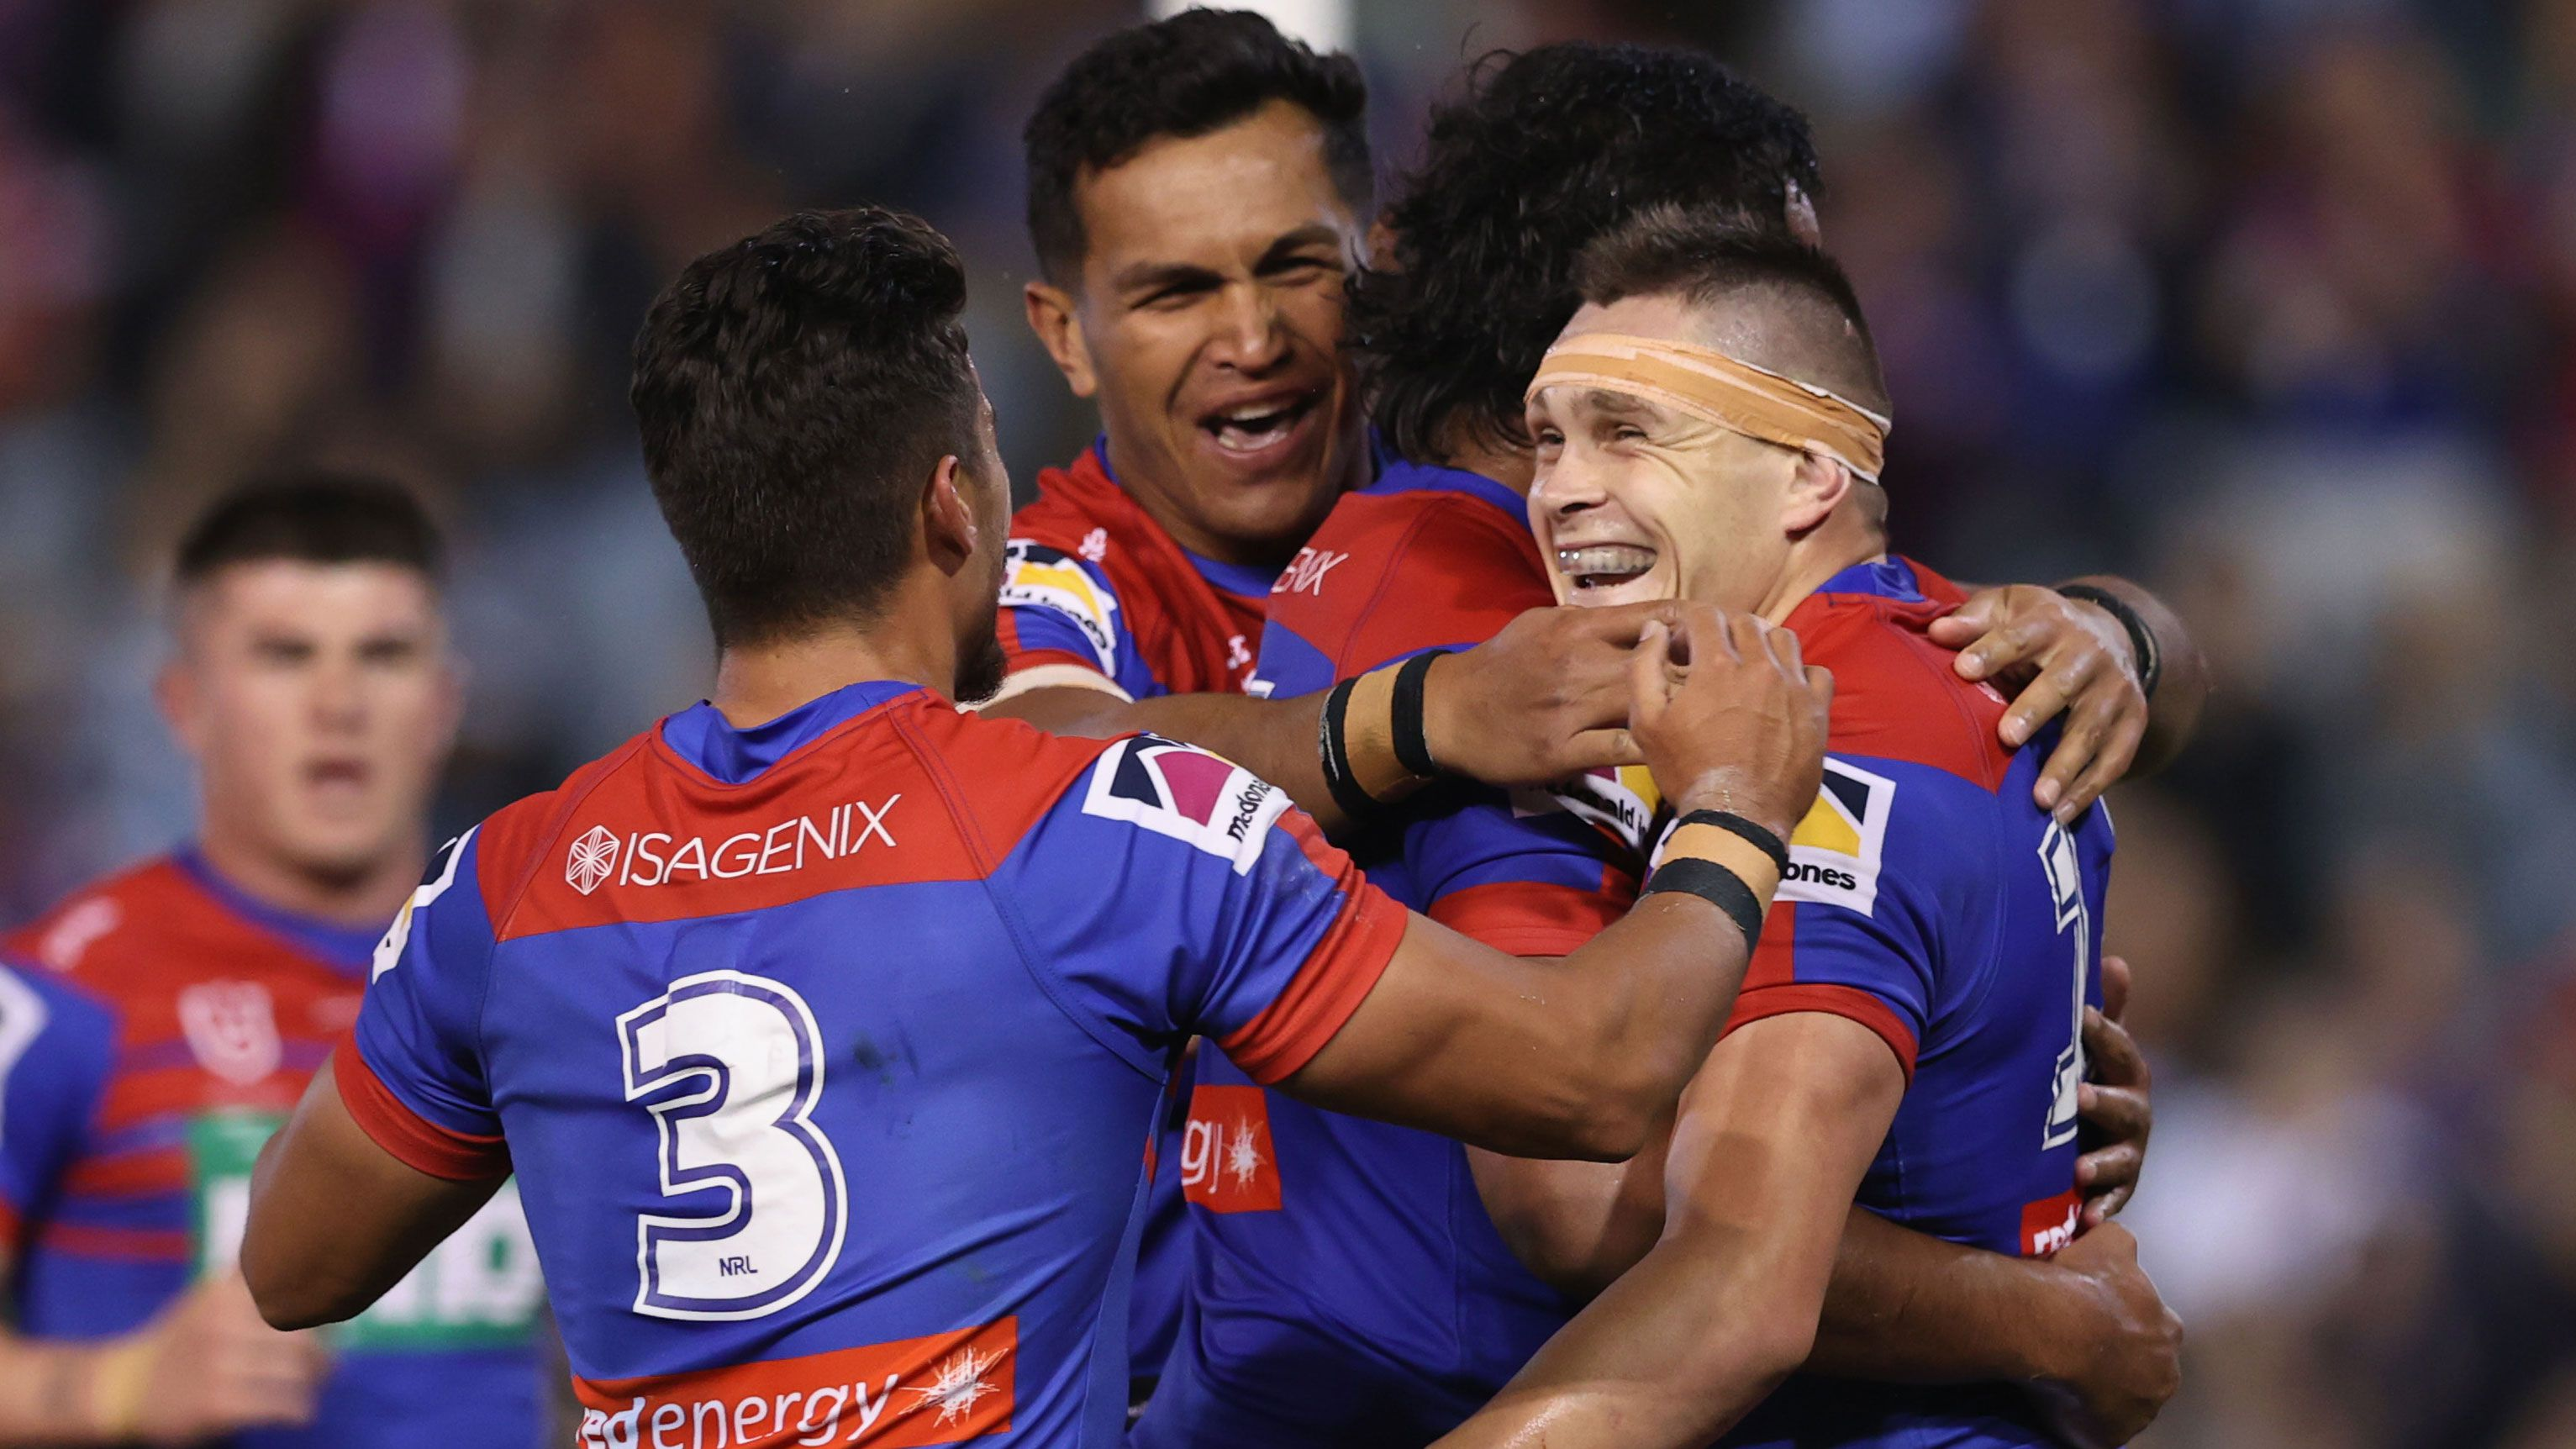 NRL Round 7 tips: Andrew Johns, Brad Fittler and Nine's experts give their predictions